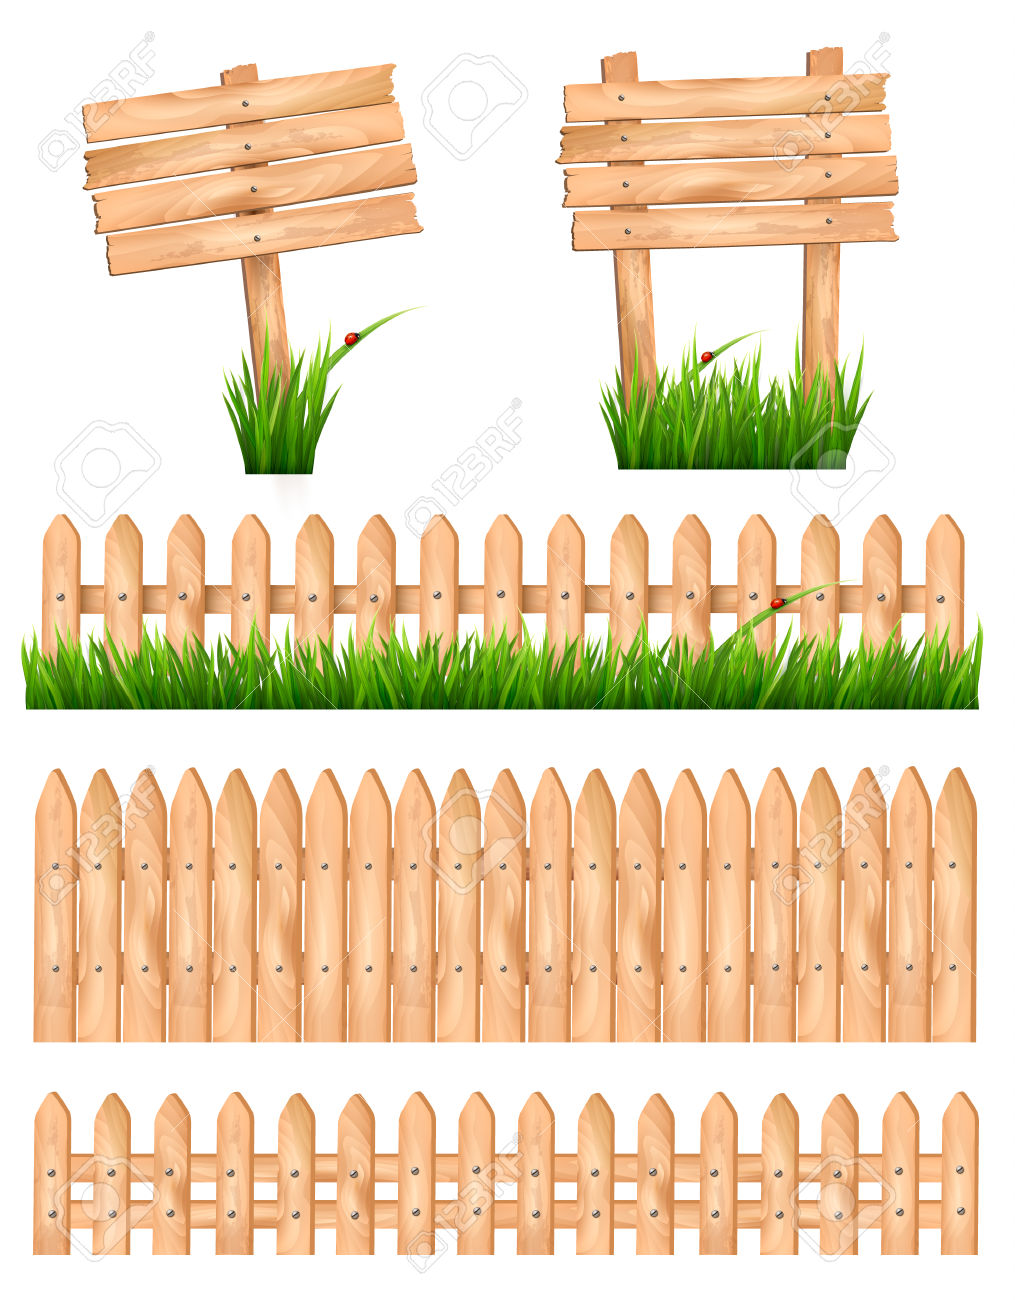 2,116 Picket Fence Stock Vector Illustration And Royalty Free.